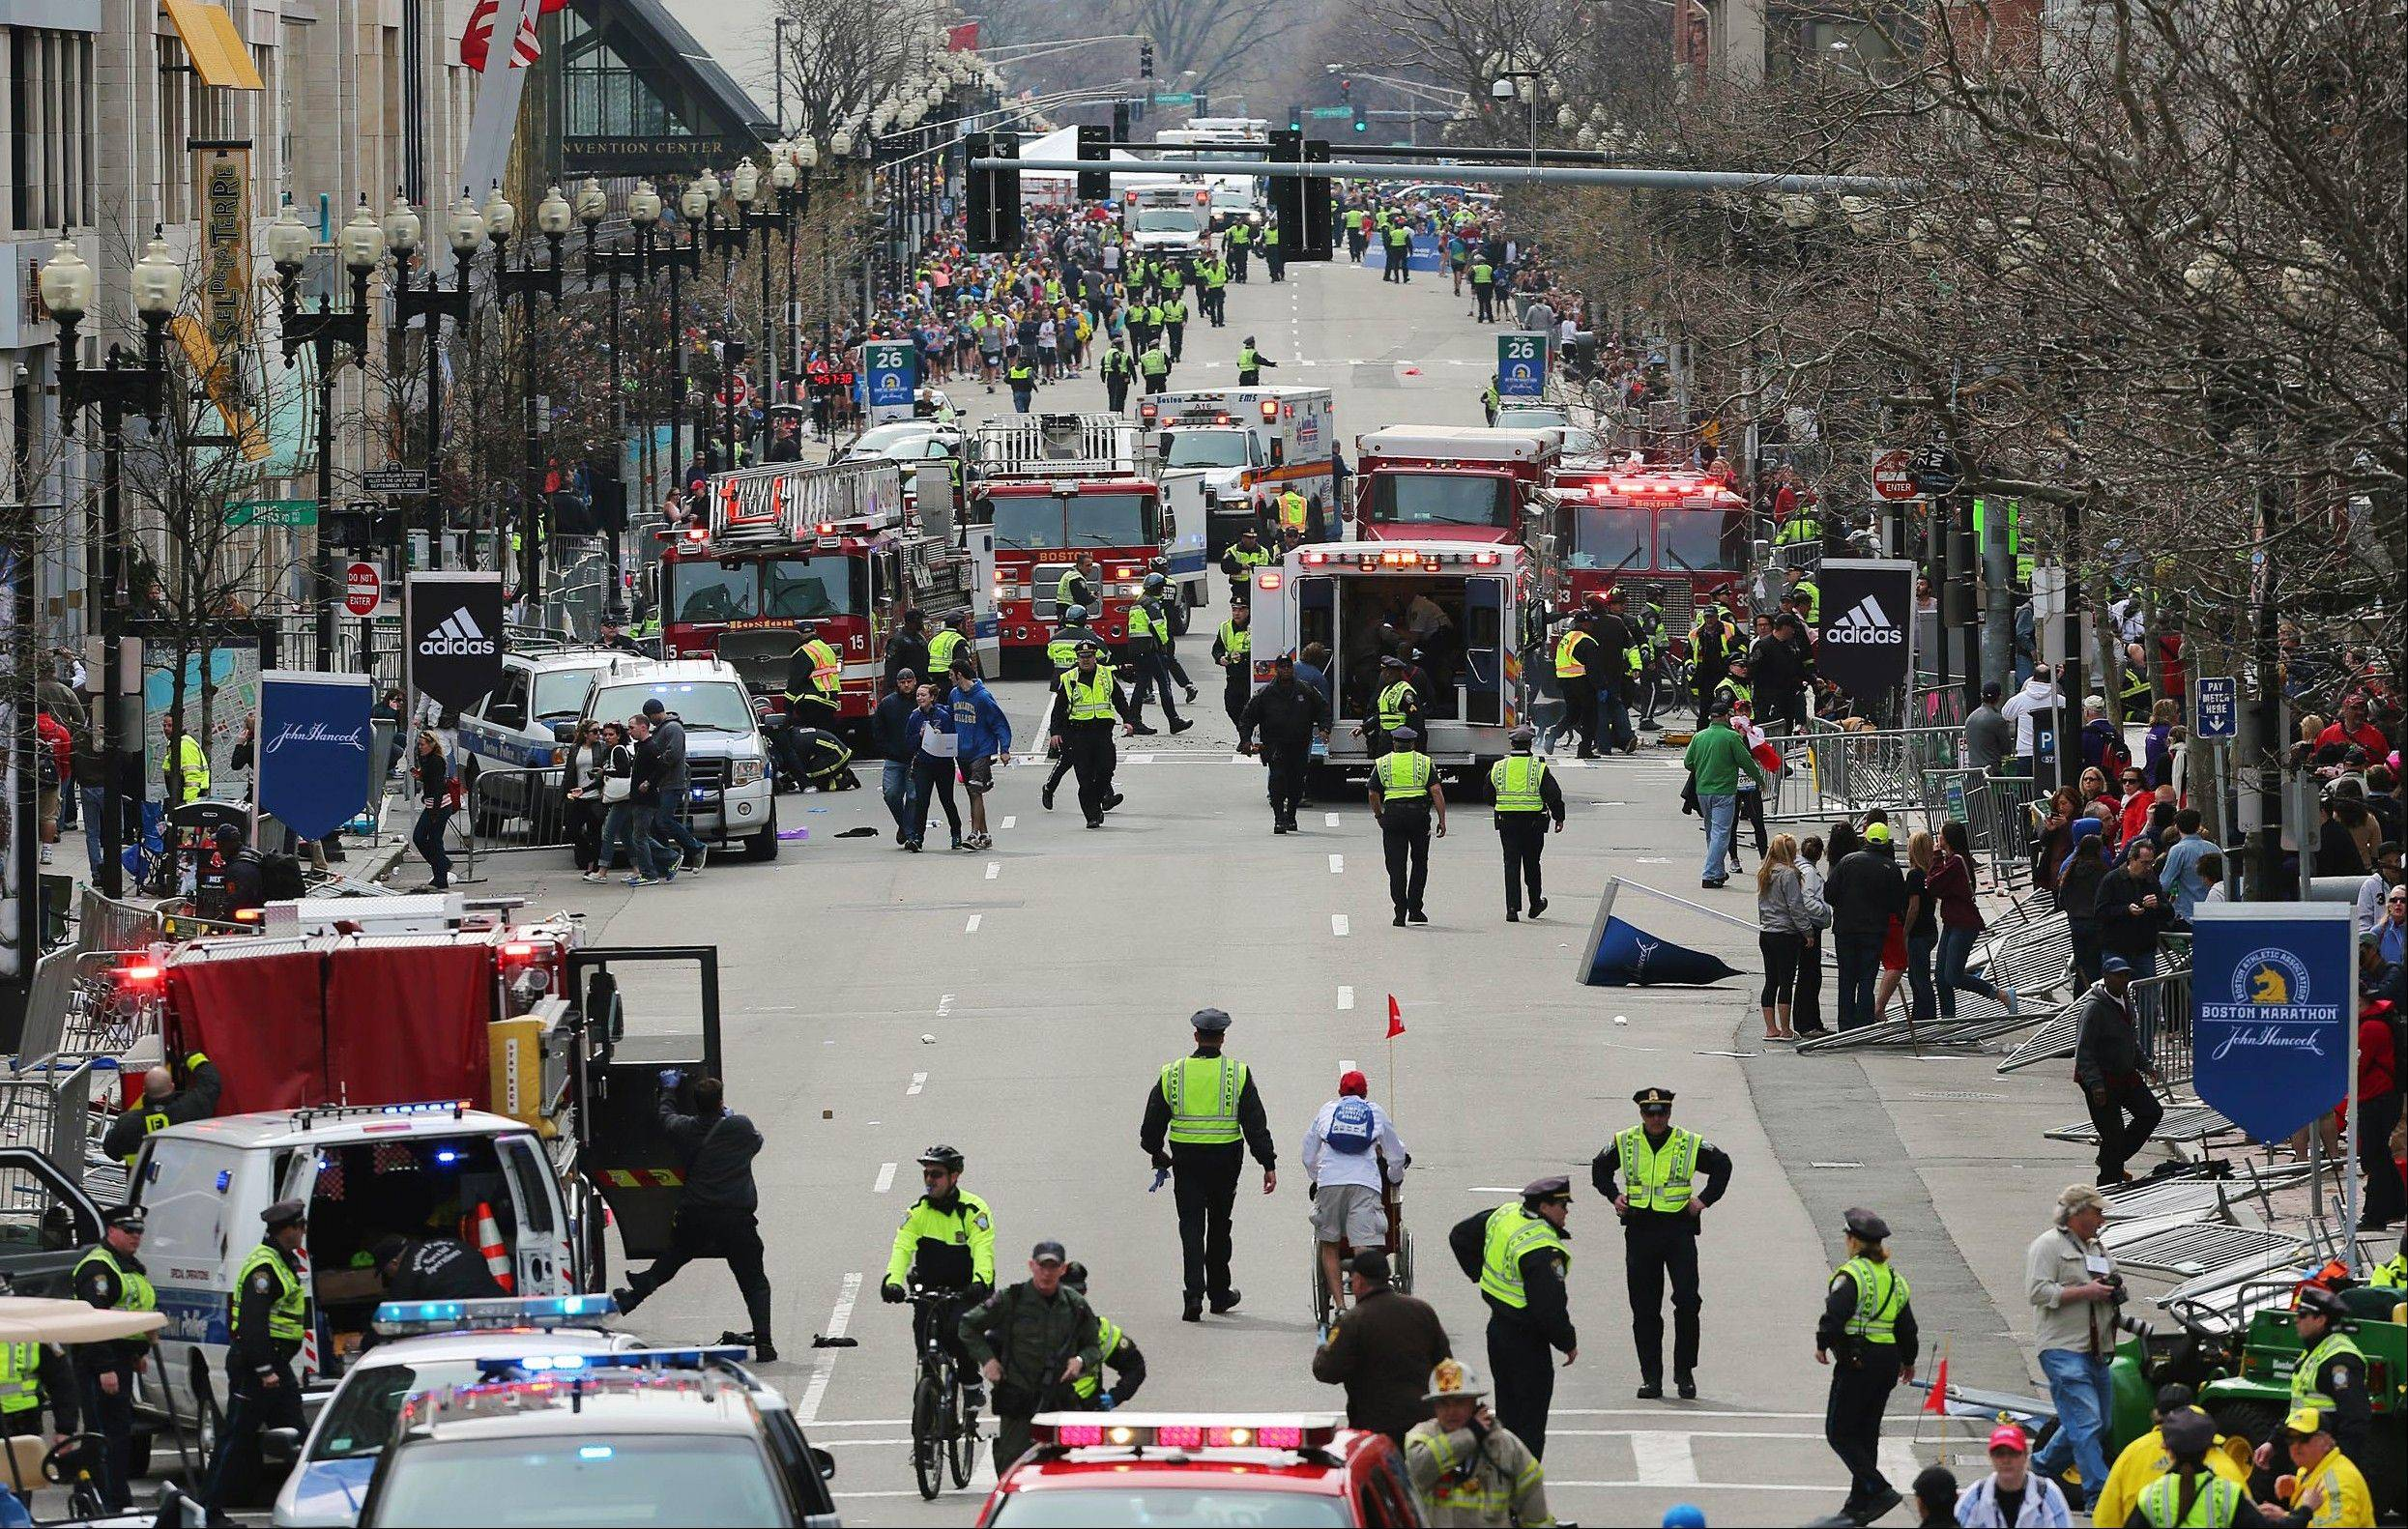 Medical workers respond following an explosion at the 2013 Boston Marathon in Boston, Monday, April 15, 2013. Two explosions shattered the euphoria of the Boston Marathon finish line on Monday, sending authorities out on the course to carry off the injured while the stragglers were rerouted away from the smoking site of the blasts.